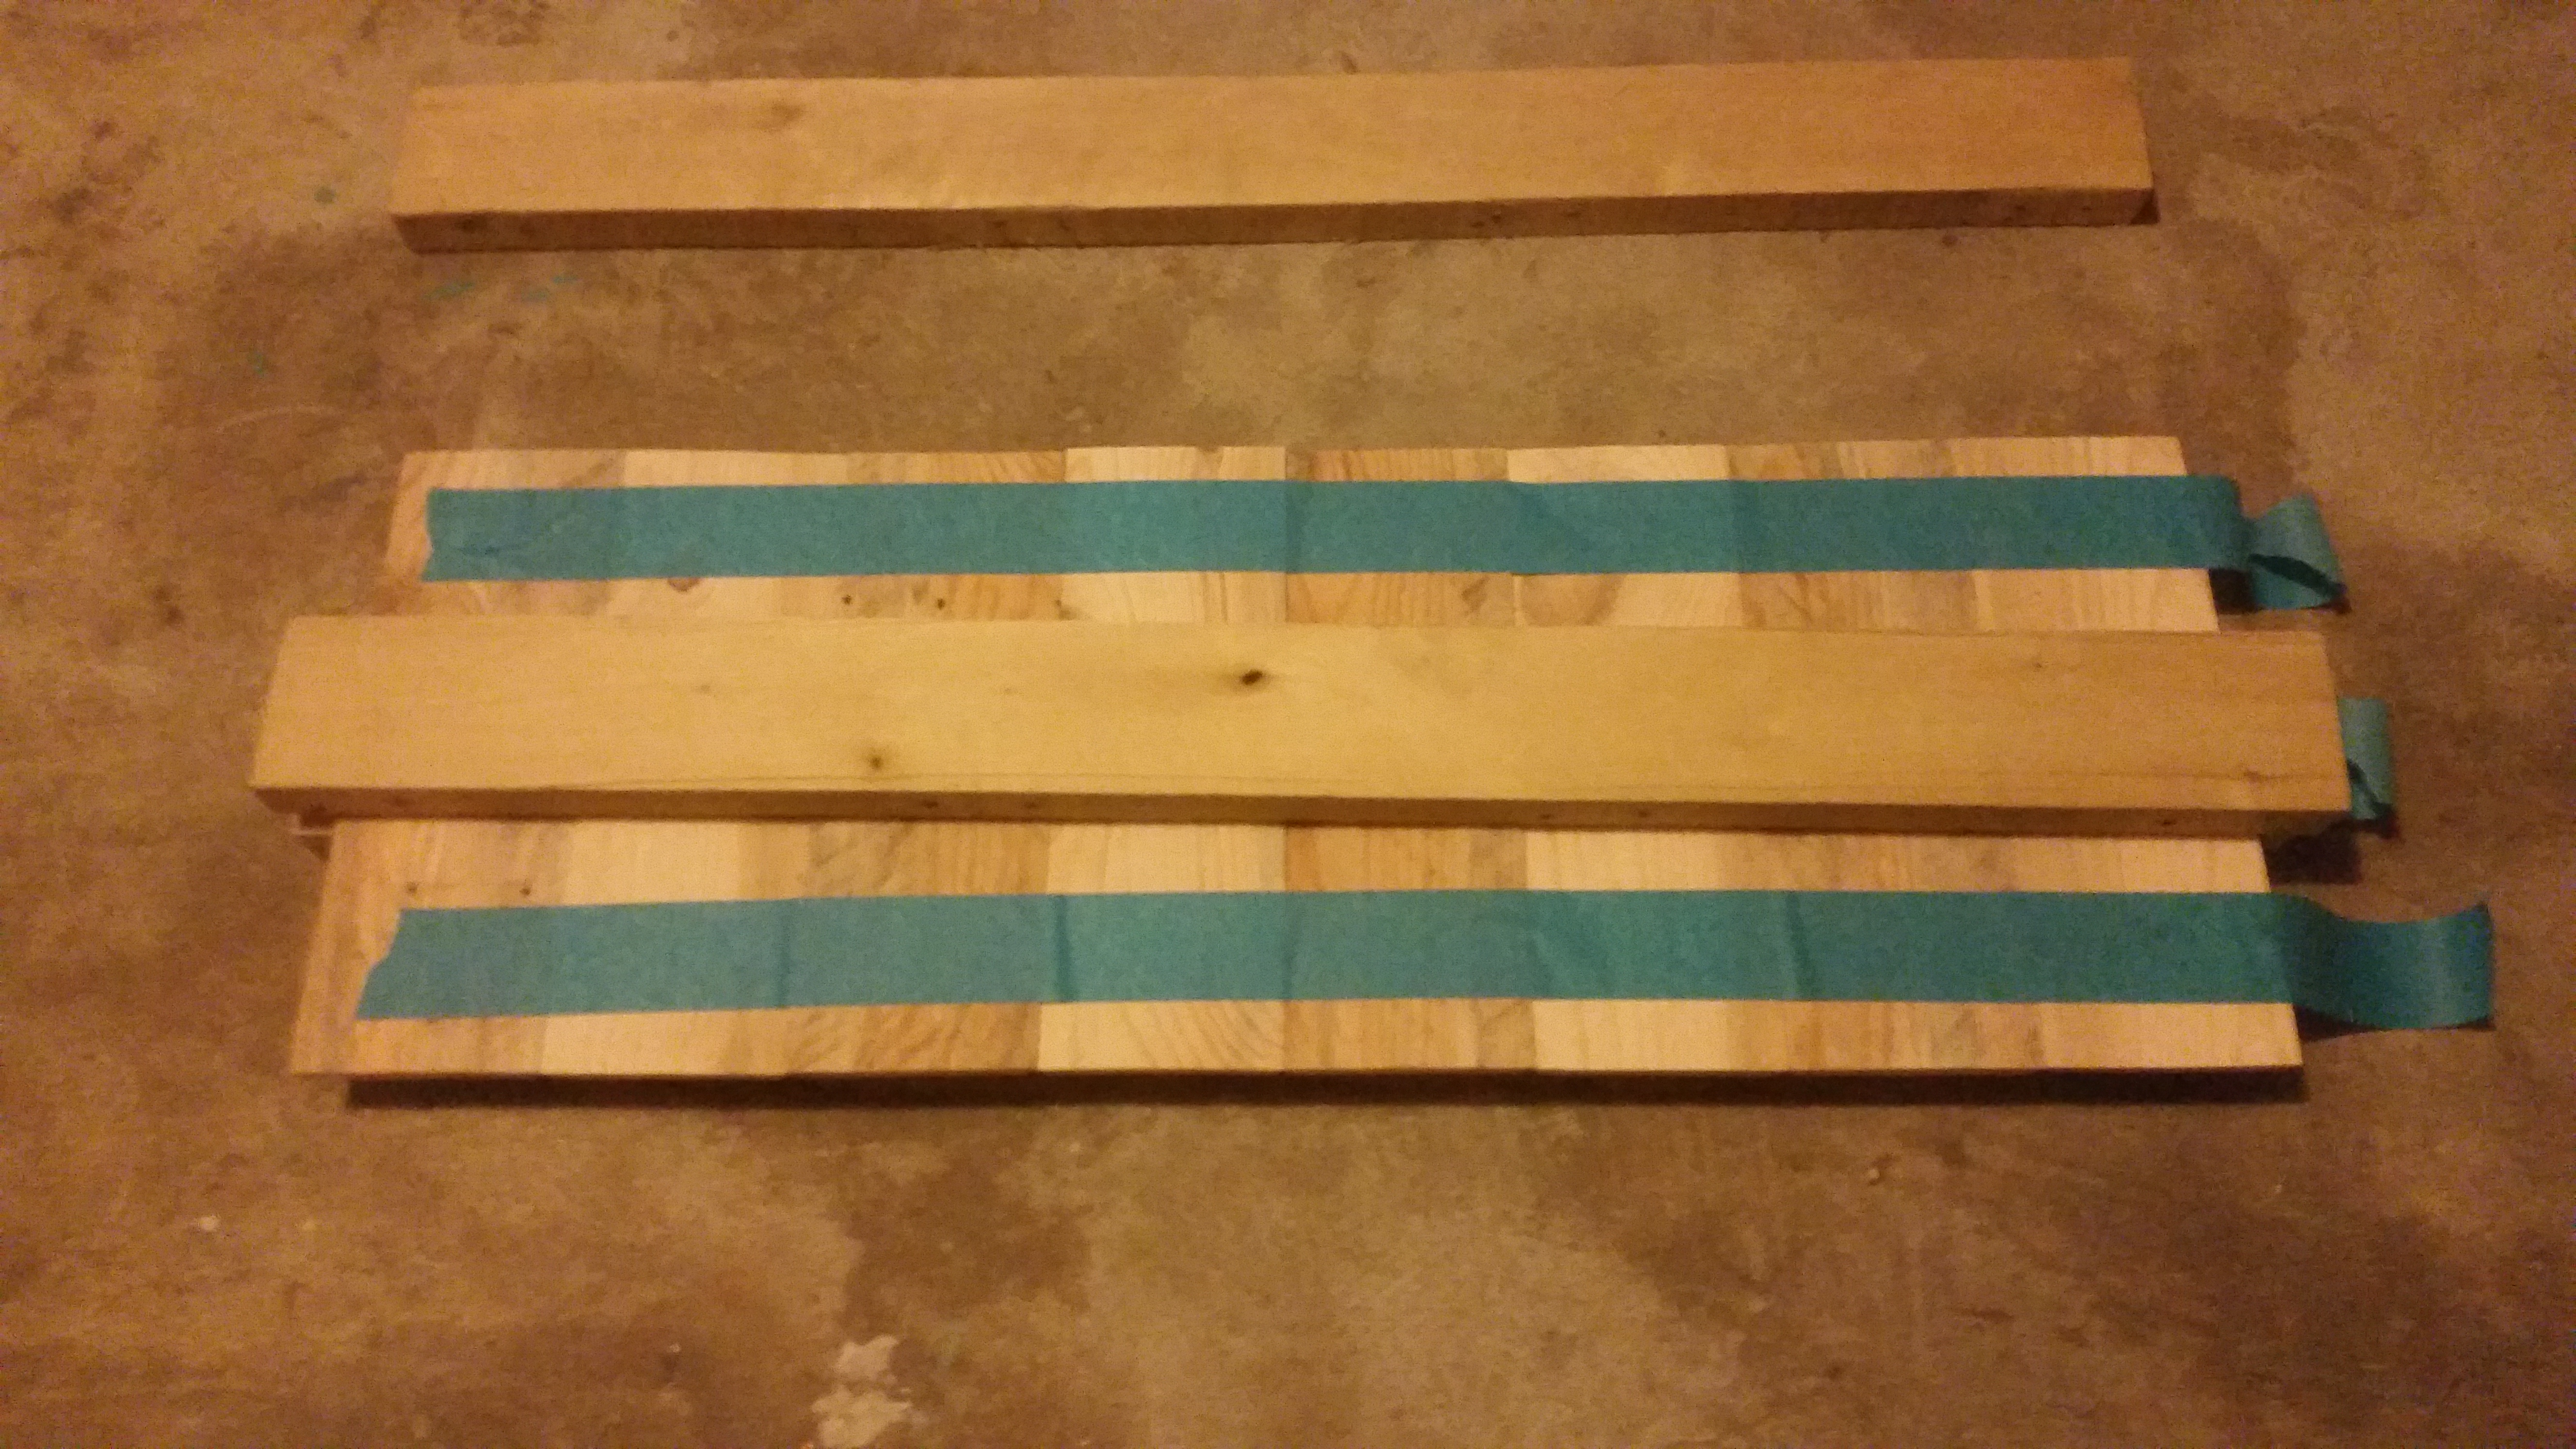 Picture of Step 4: Setting Up the Boards for Gluing